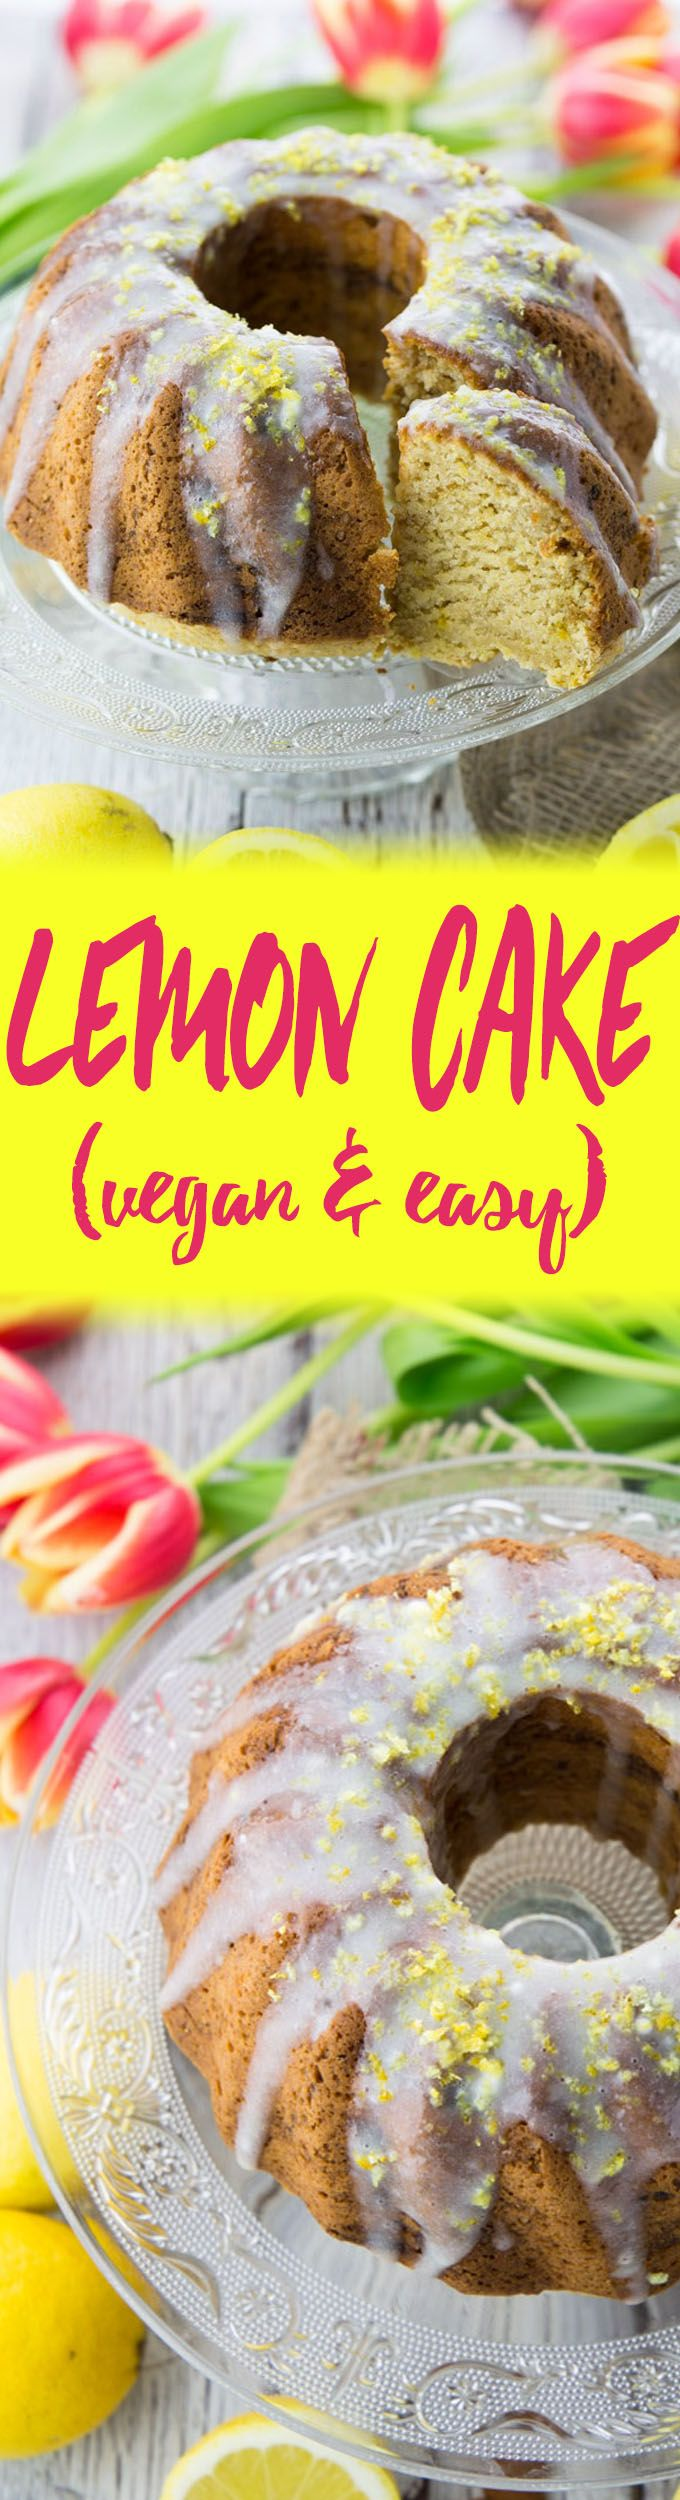 This vegan lemon cake is one of my favorite cakes for spring and summer. It's super delicious, fluffy, and moist! Plus the recipe is incredibly easy!